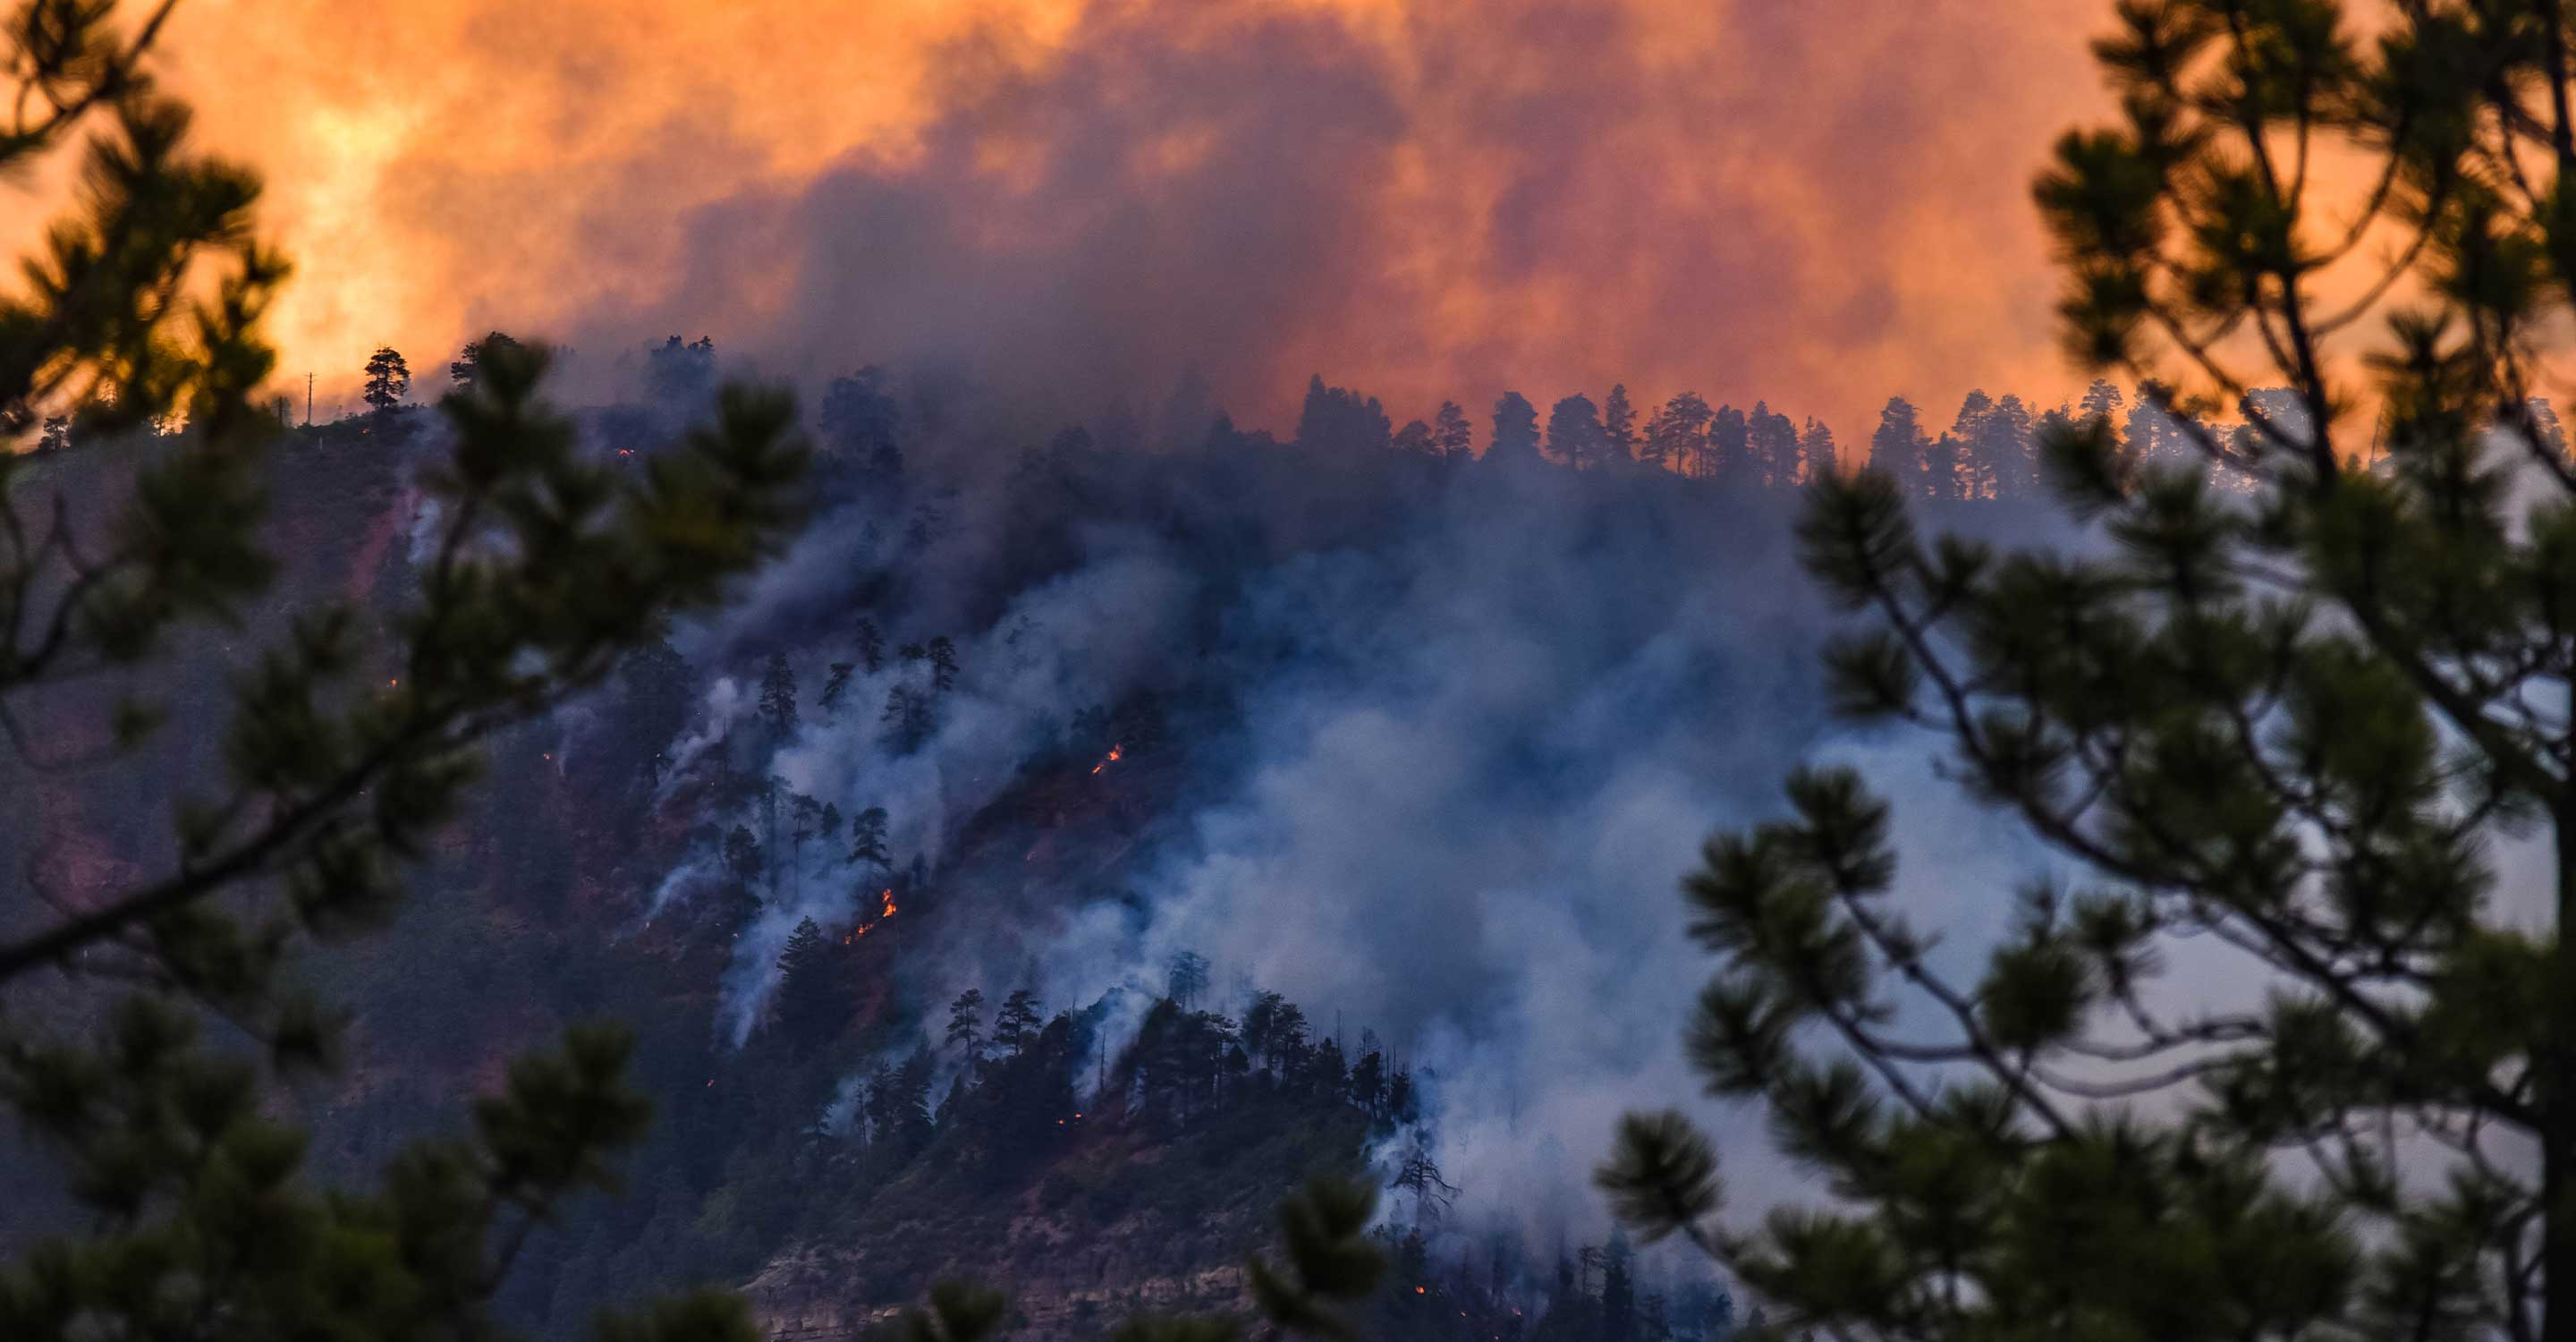 Are wildfires really getting worse?